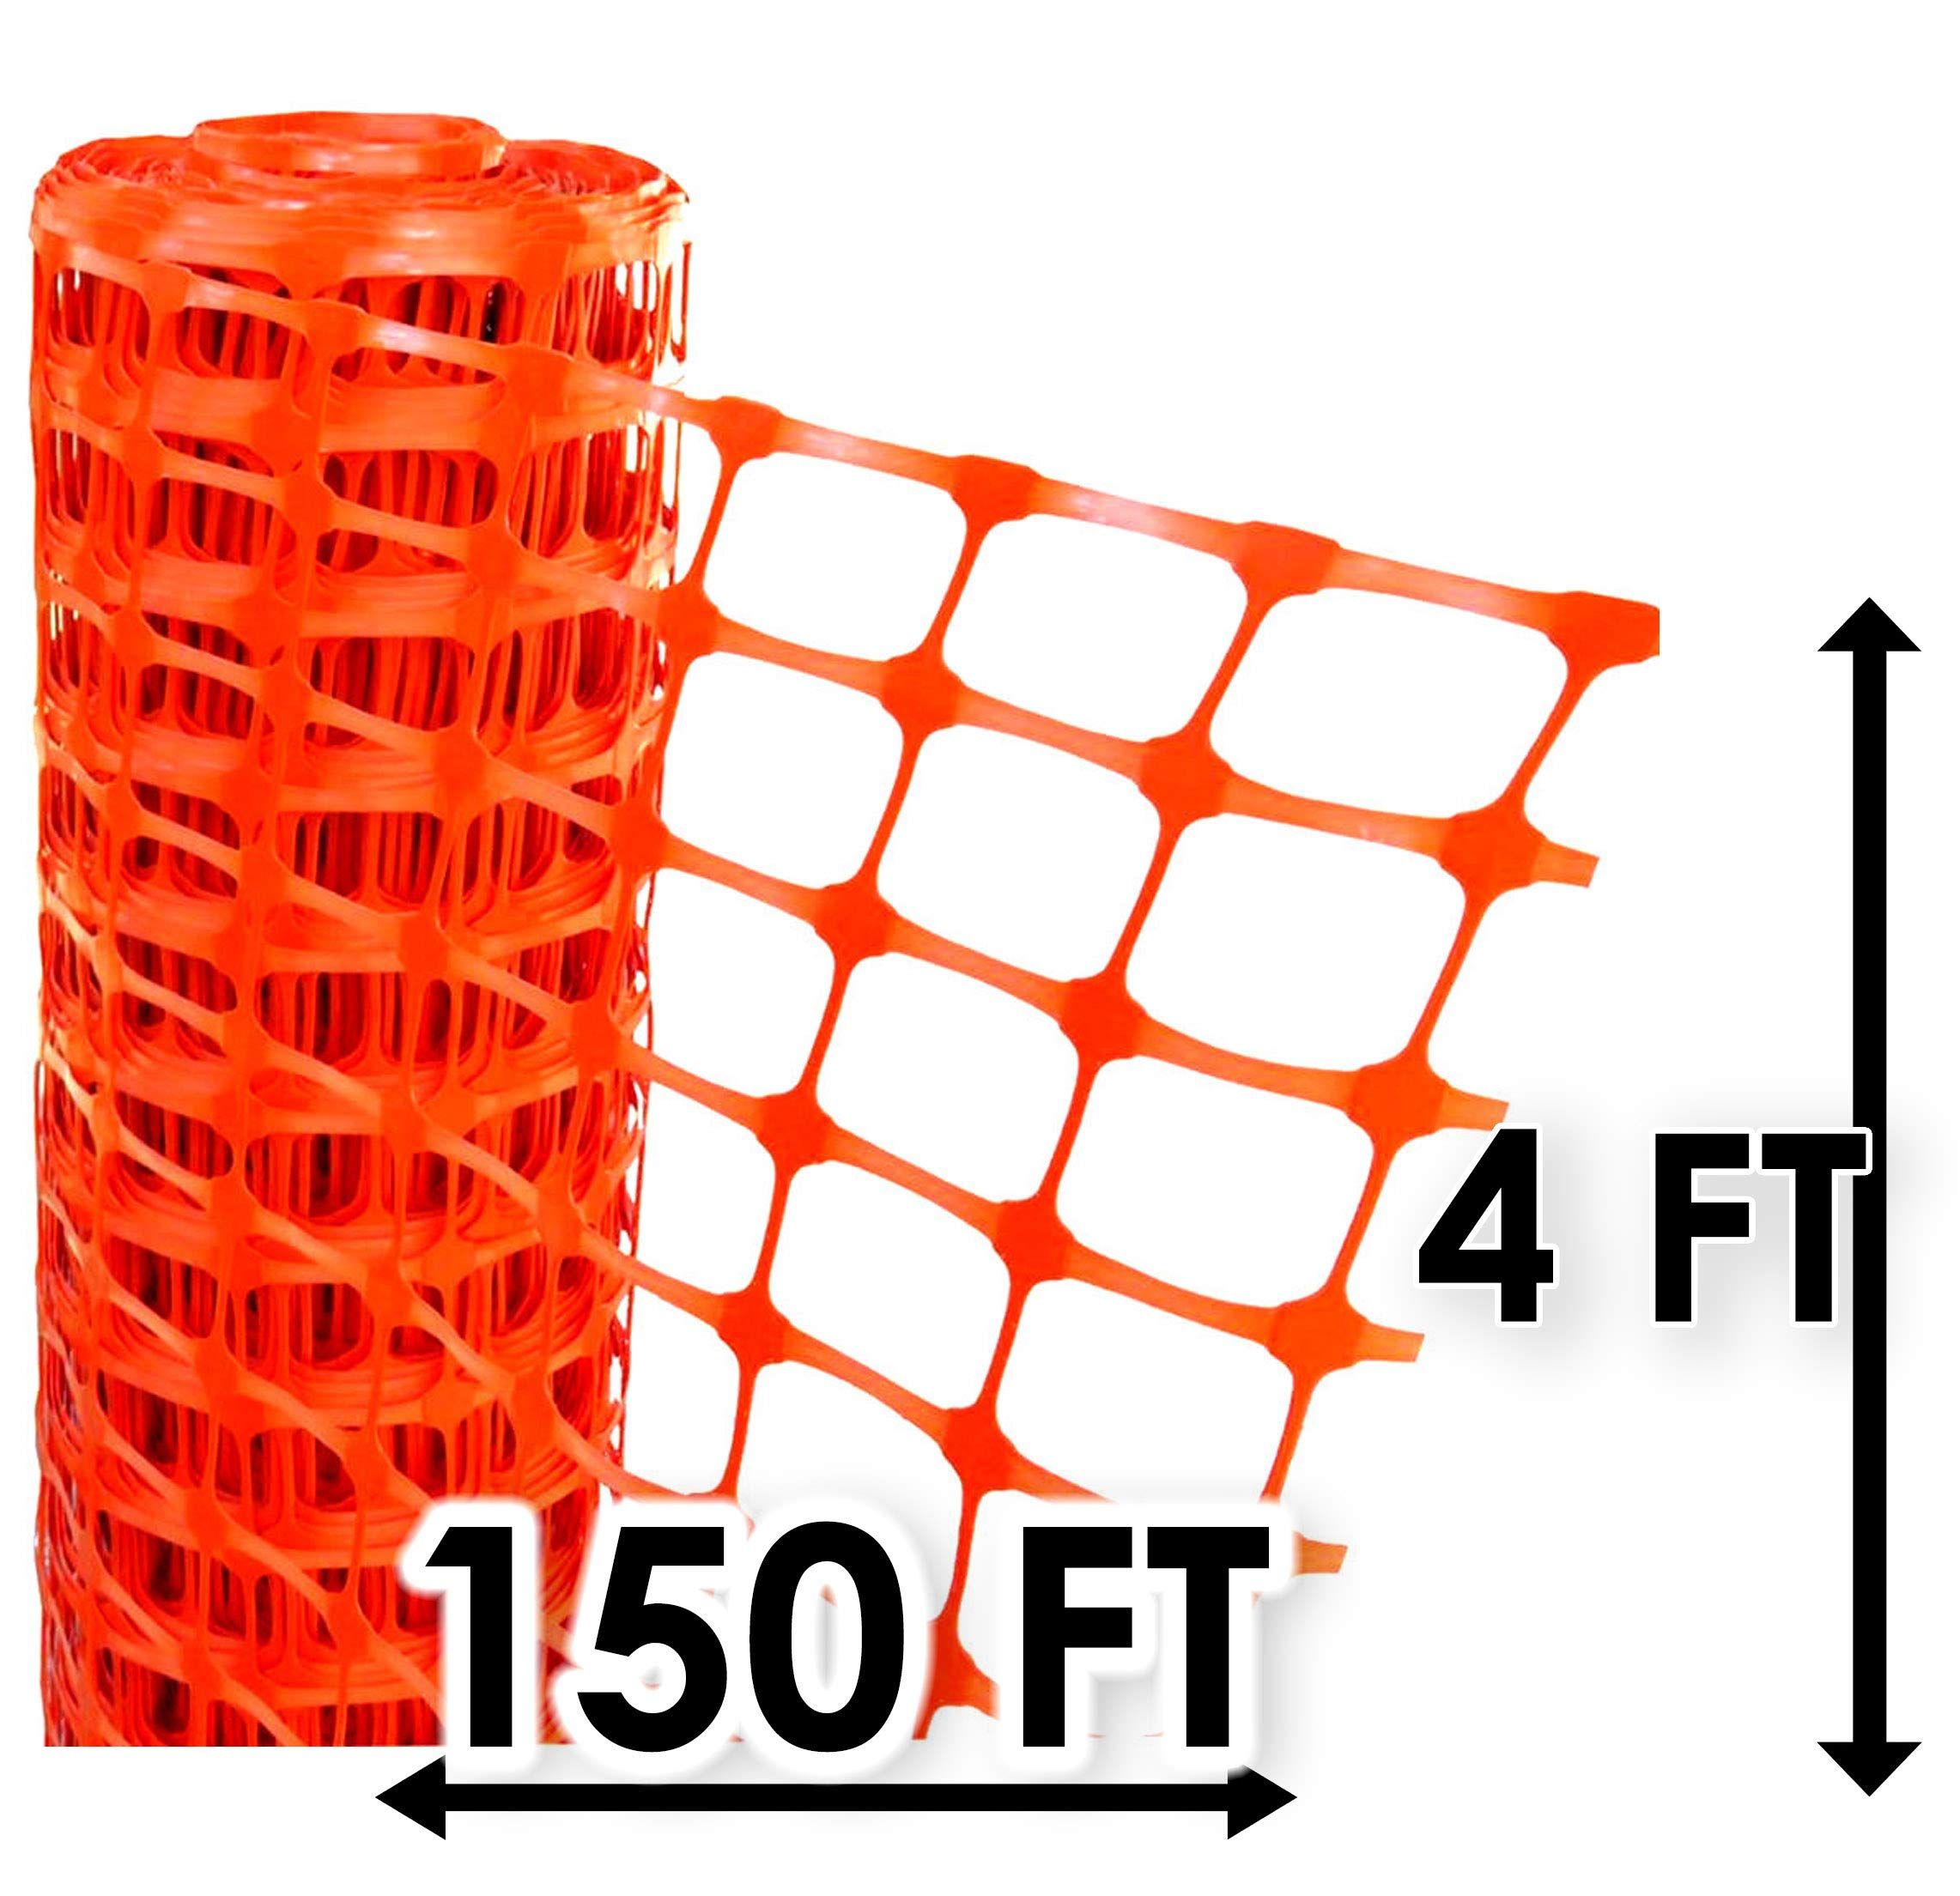 Electriduct Plastic Construction Fencing: 150 Feet Orange Safety Barrier Fence Roll by Electriduct